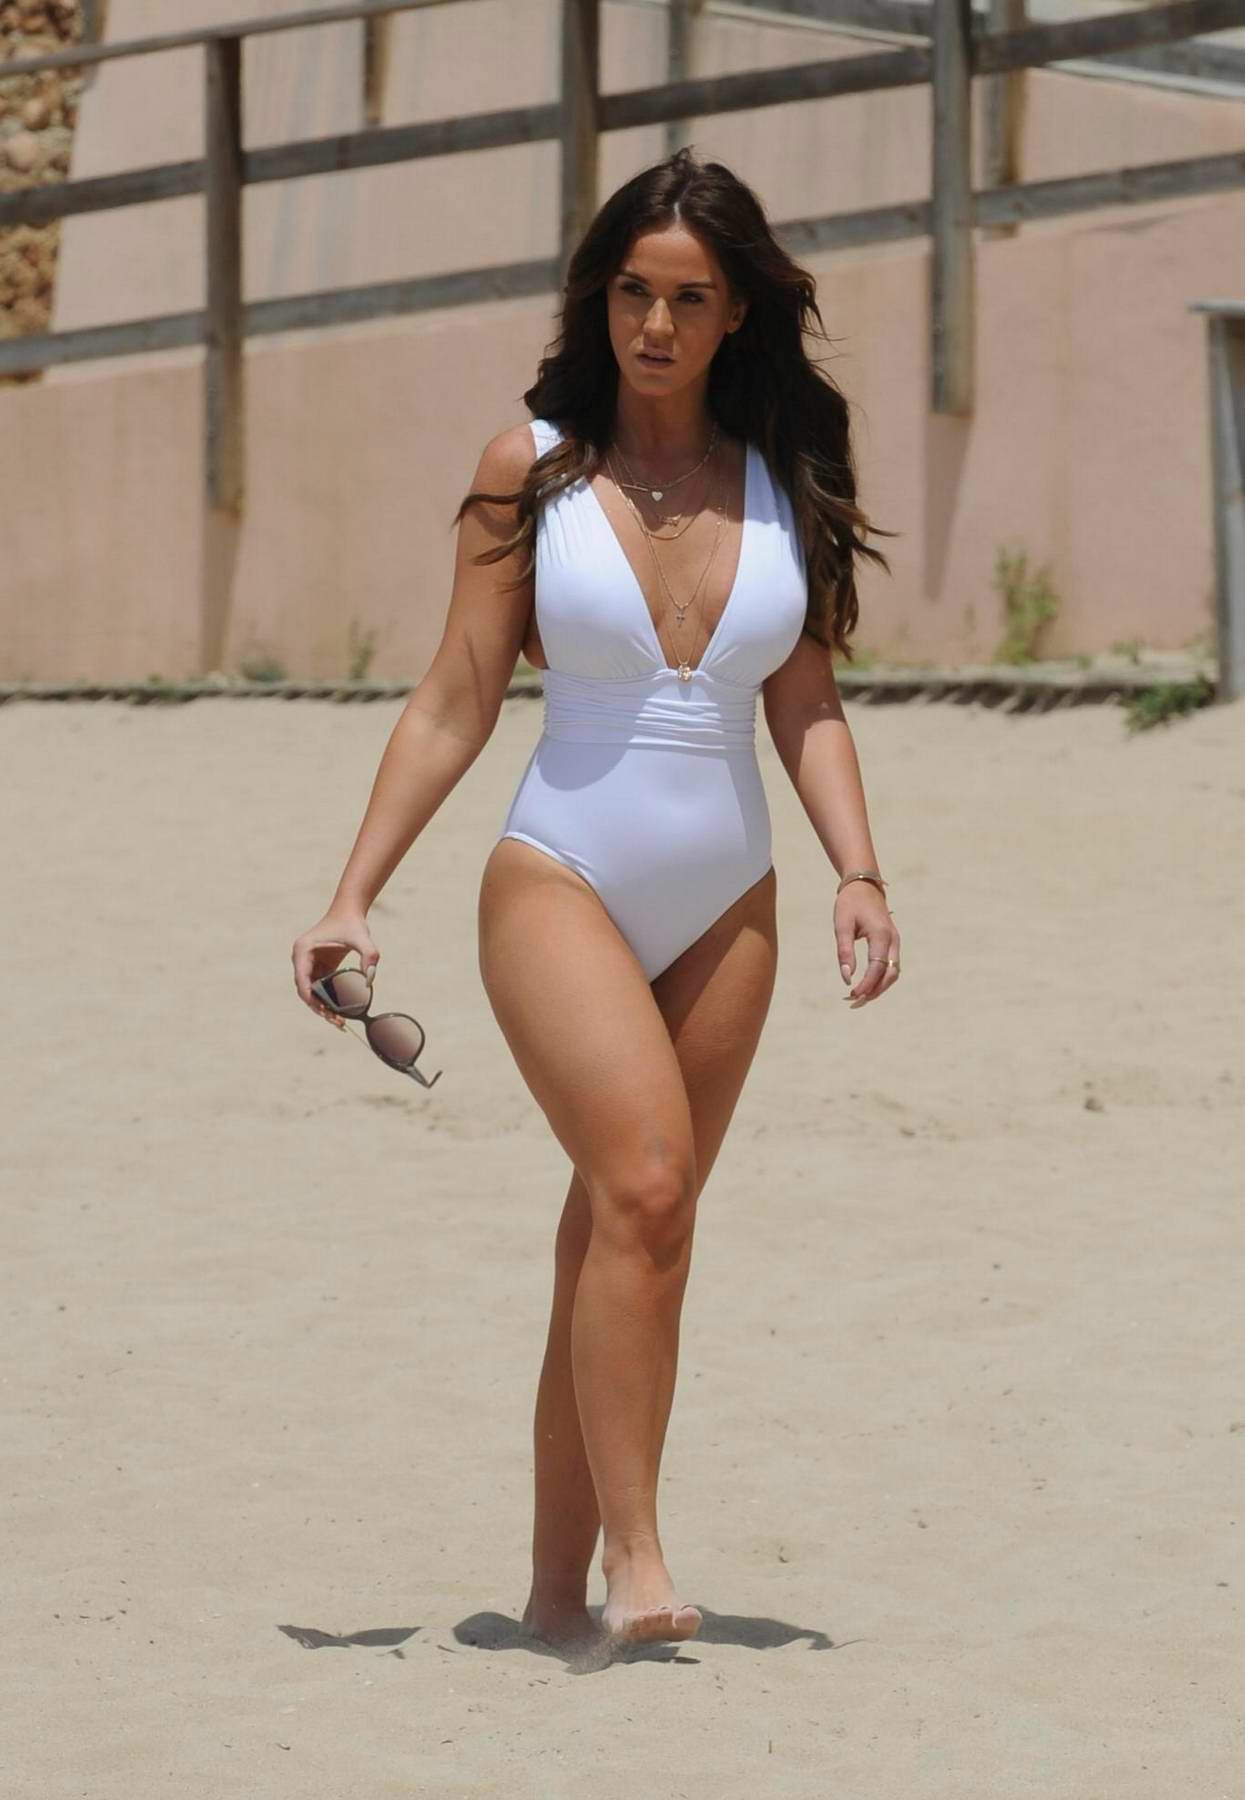 Vicky Pattison in a White Swimsuit enjoying her Vacation in Spain